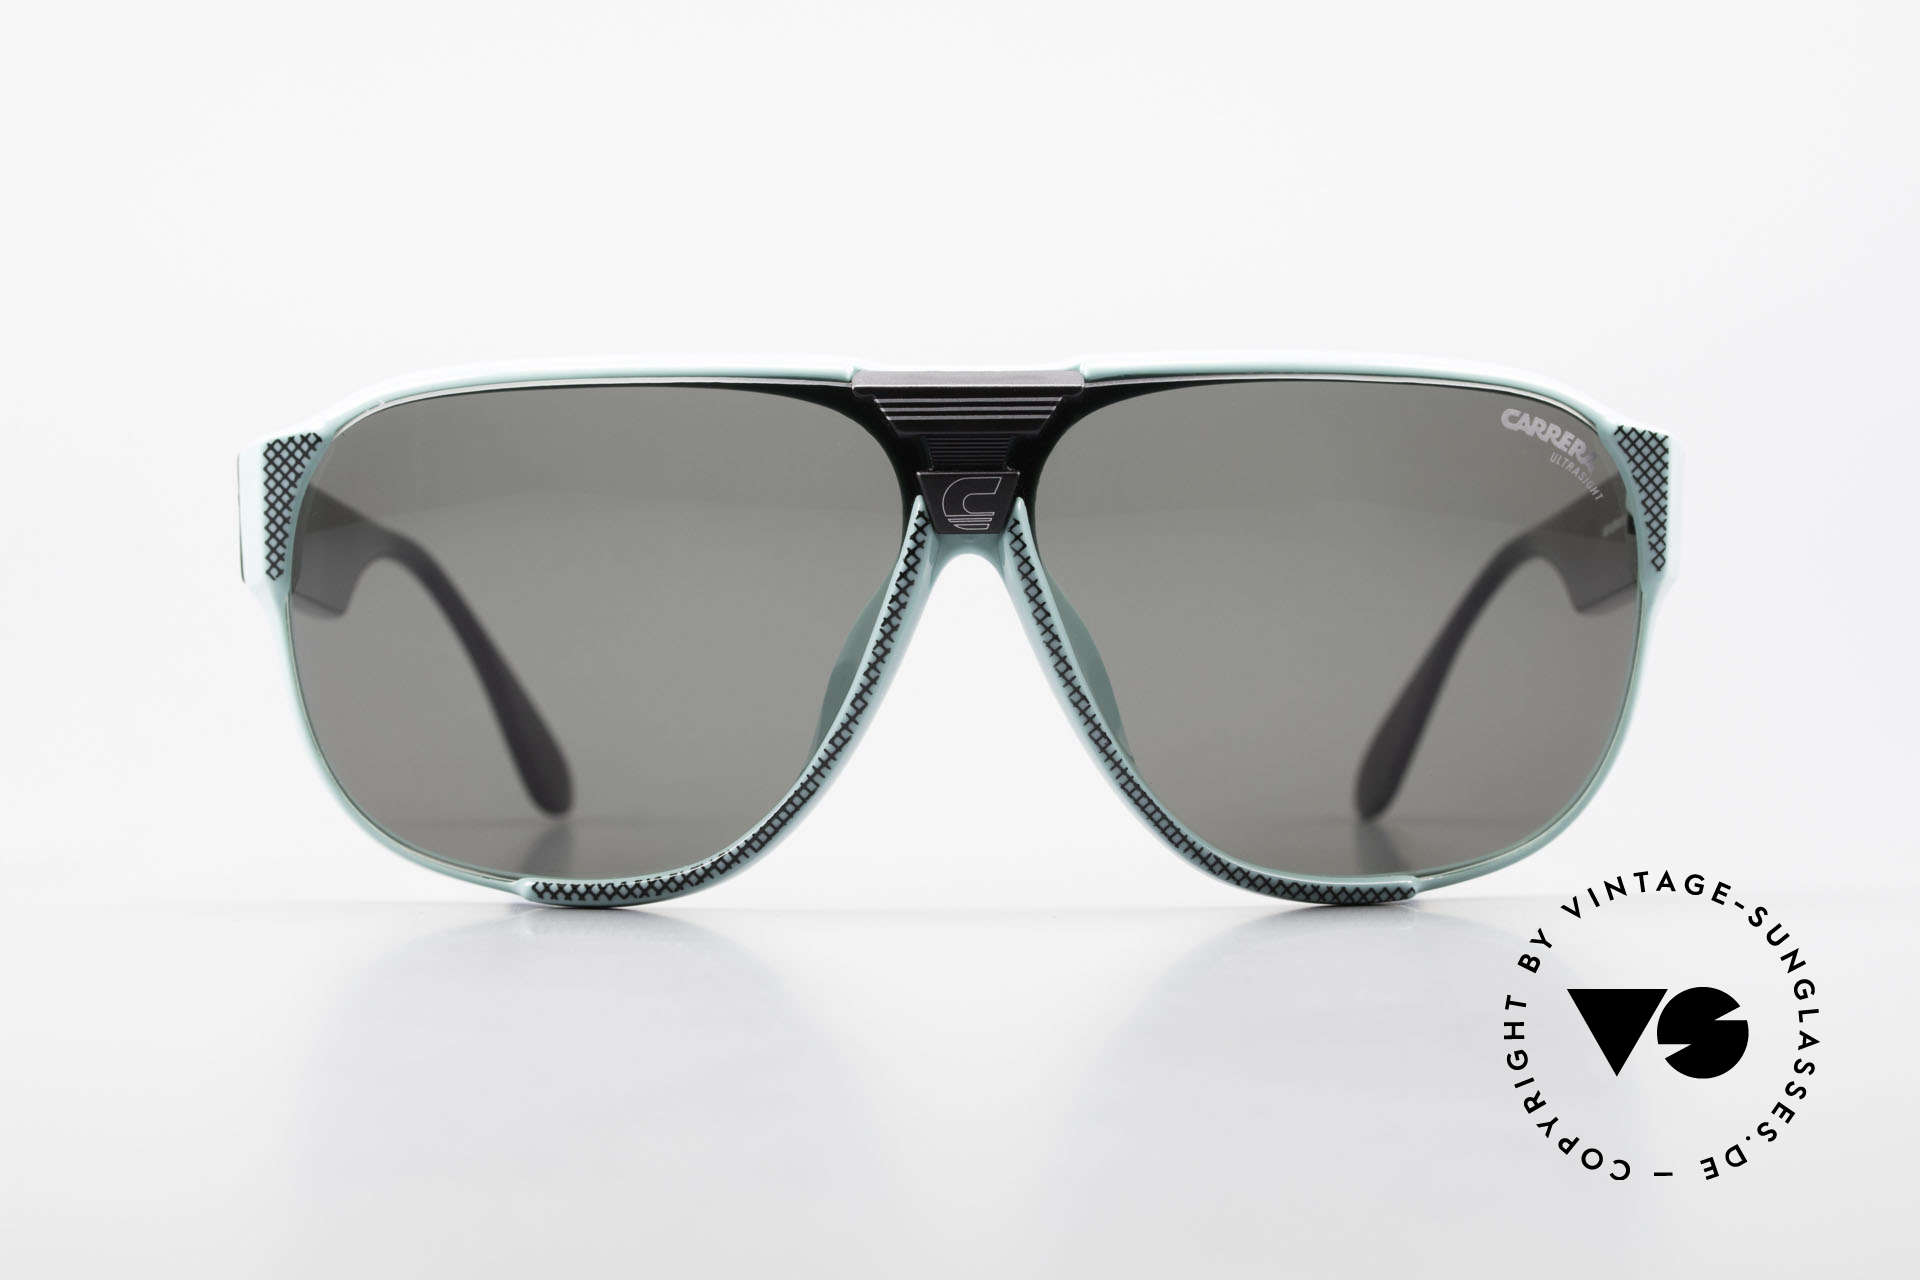 Carrera 5431 80's Vintage Sports Sunglasses, lightweight synthetic frame = OPTYL material!, Made for Men